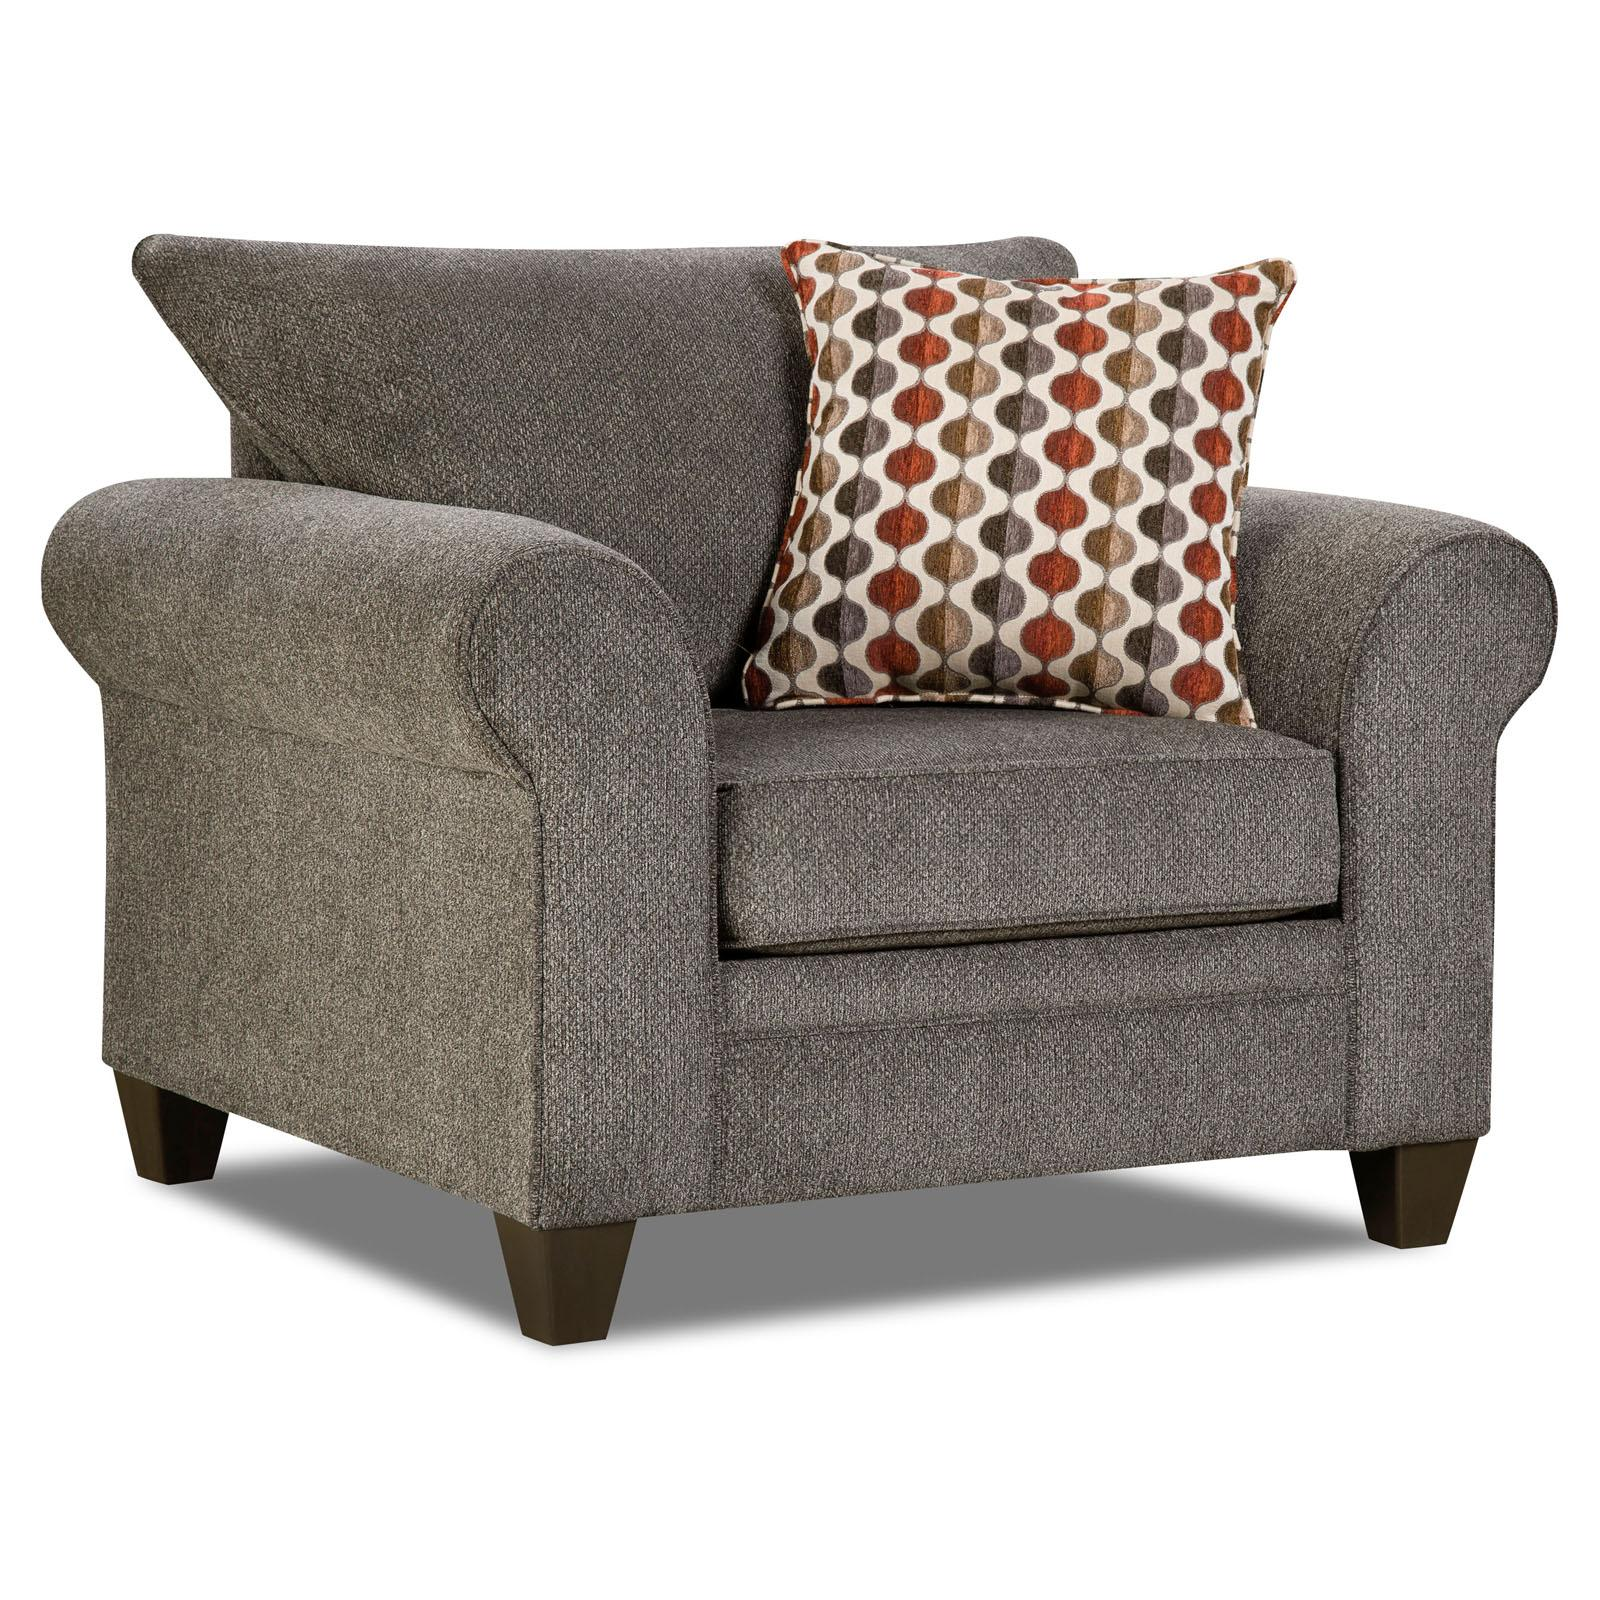 Simmons Upholstery Albany Accent Chair - 1647-01 ALBANY PEWTER